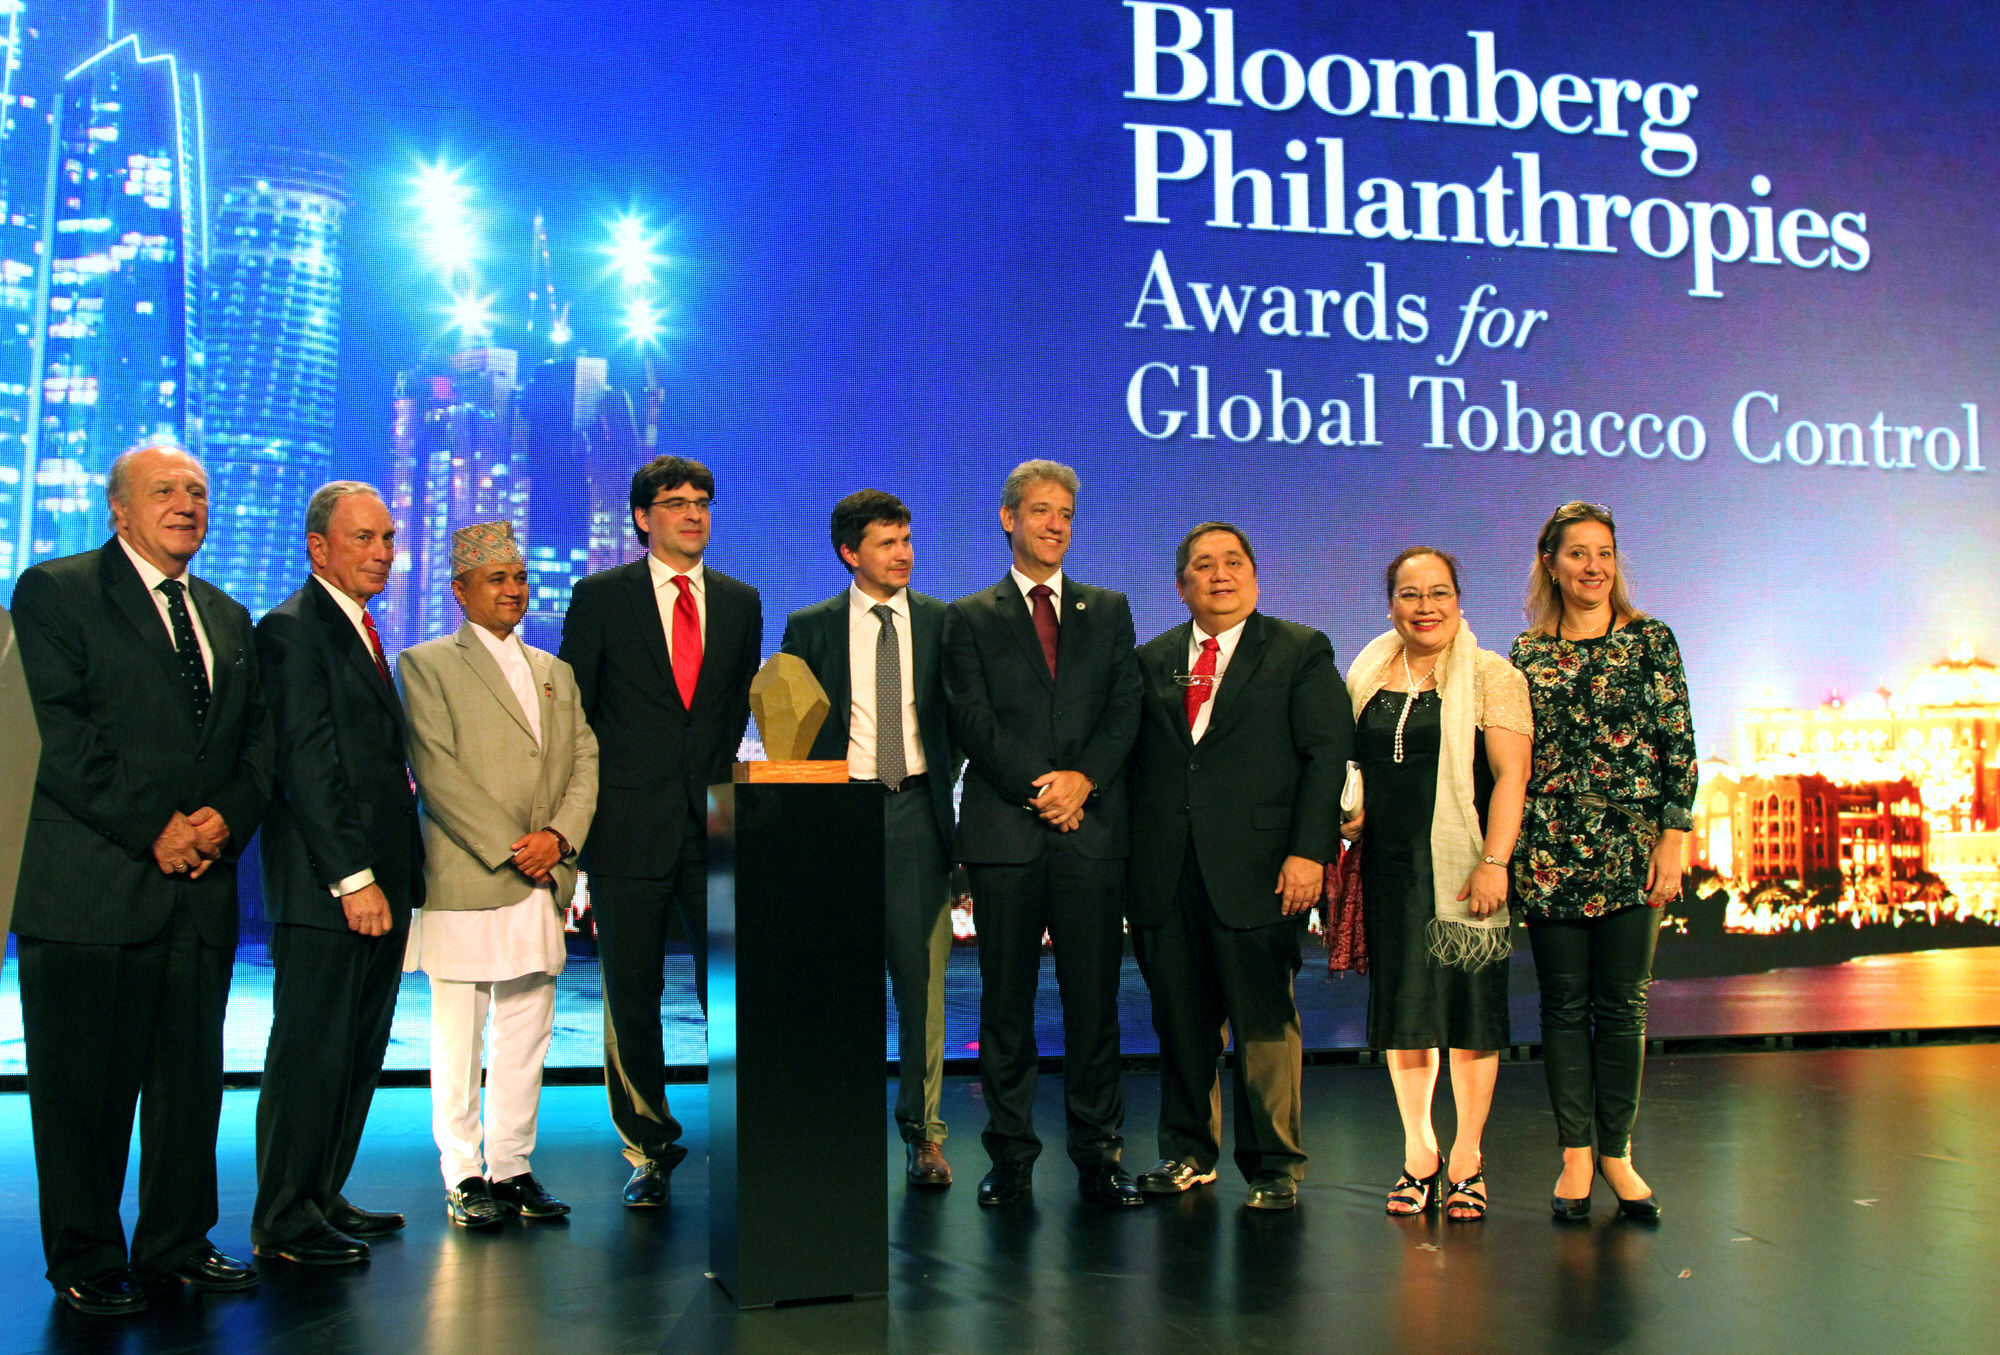 Mike Bloomberg presents the 2015 Bloomberg Philanthropies Global Tobacco Control Awards to Uruguay, Russia, Philippines, Nepal, Brazil and Ukraine